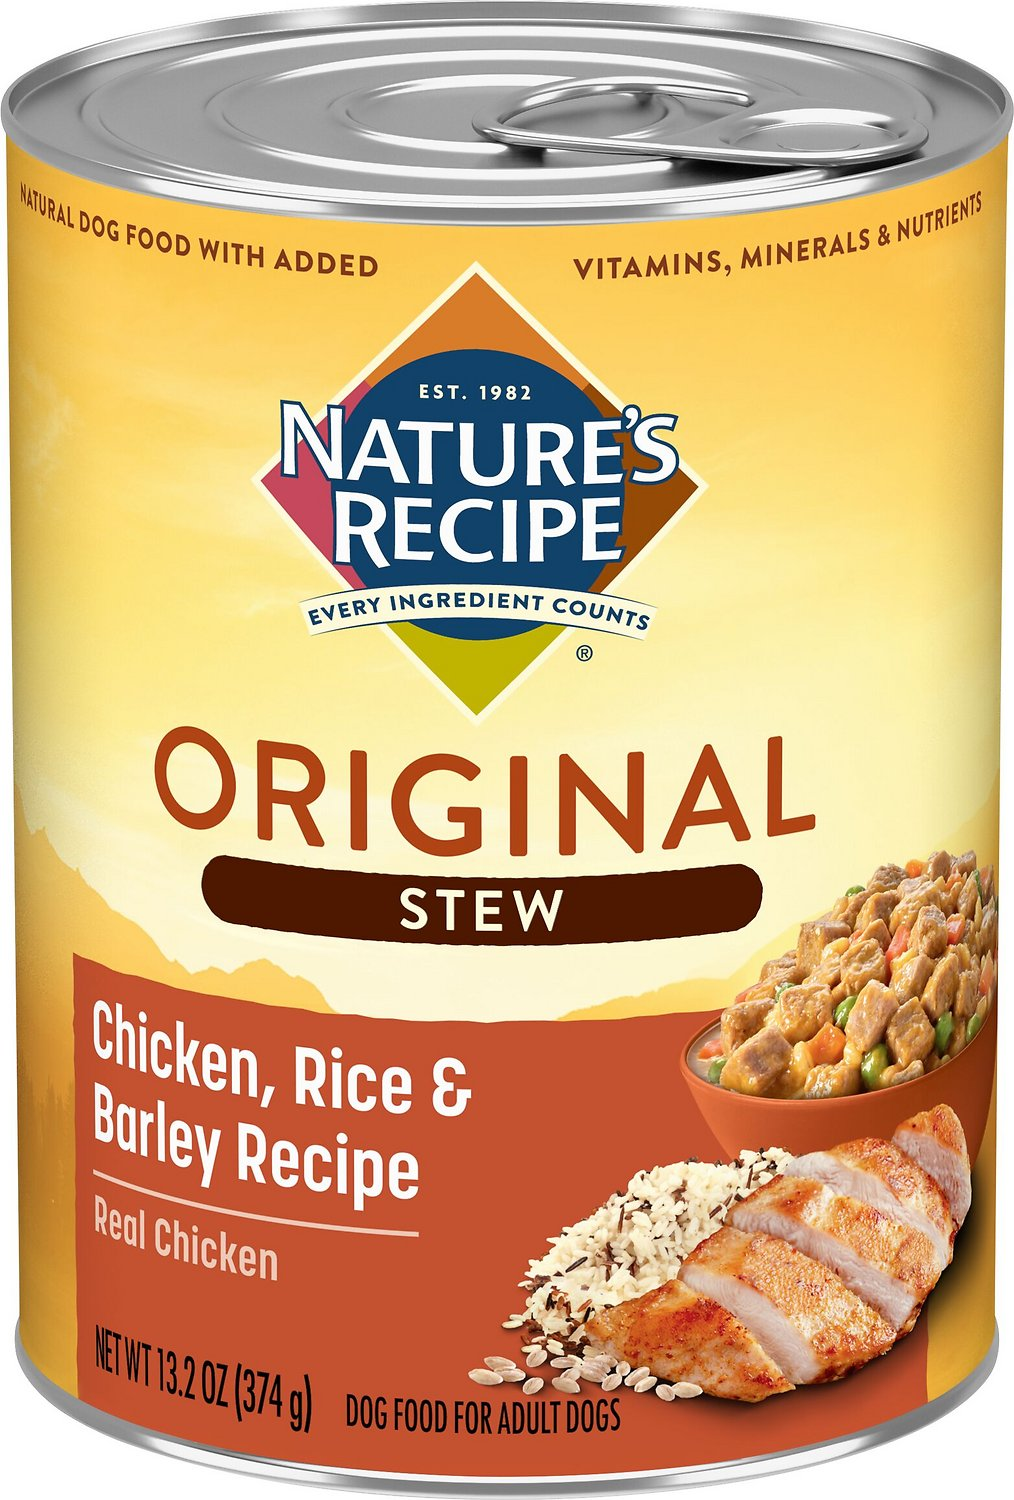 Natures recipe easy to digest chicken rice barley recipe cuts in video forumfinder Images